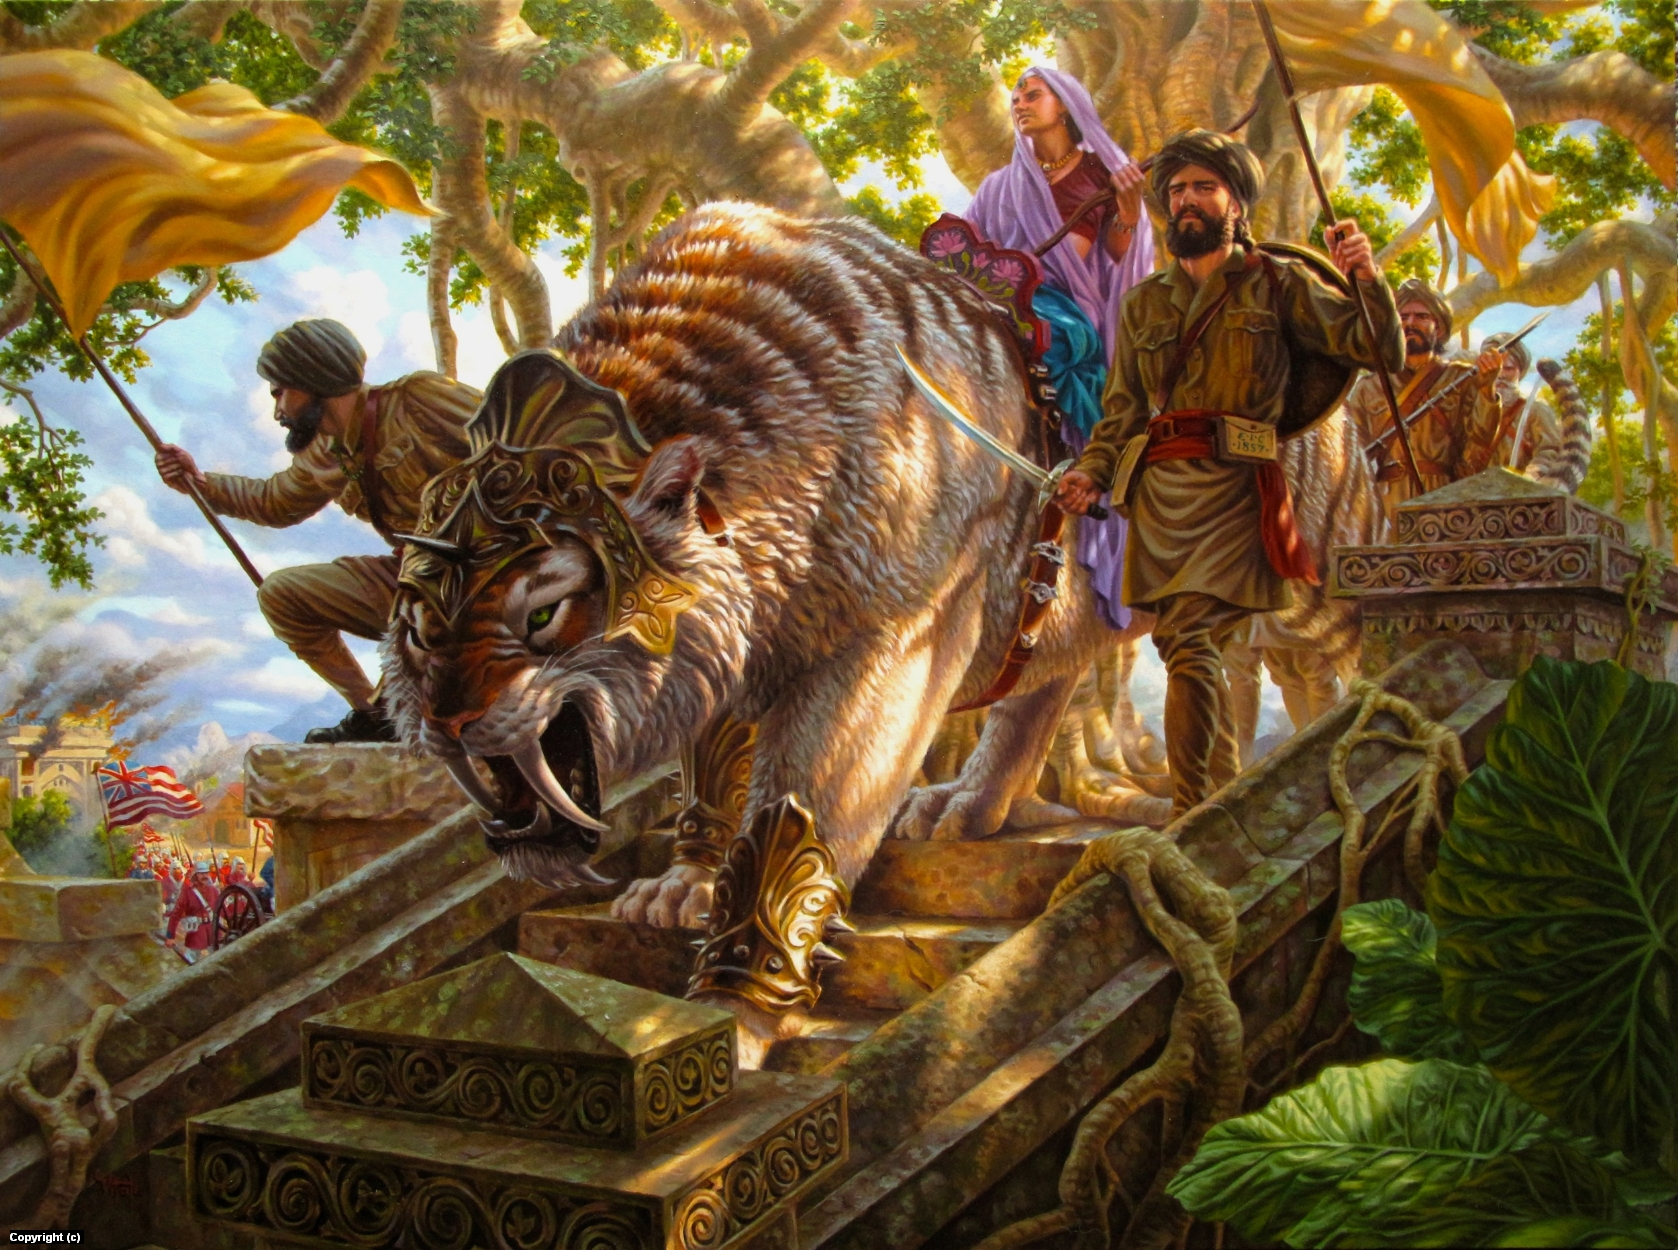 Sepoy Rebellion Artwork by raoul vitale